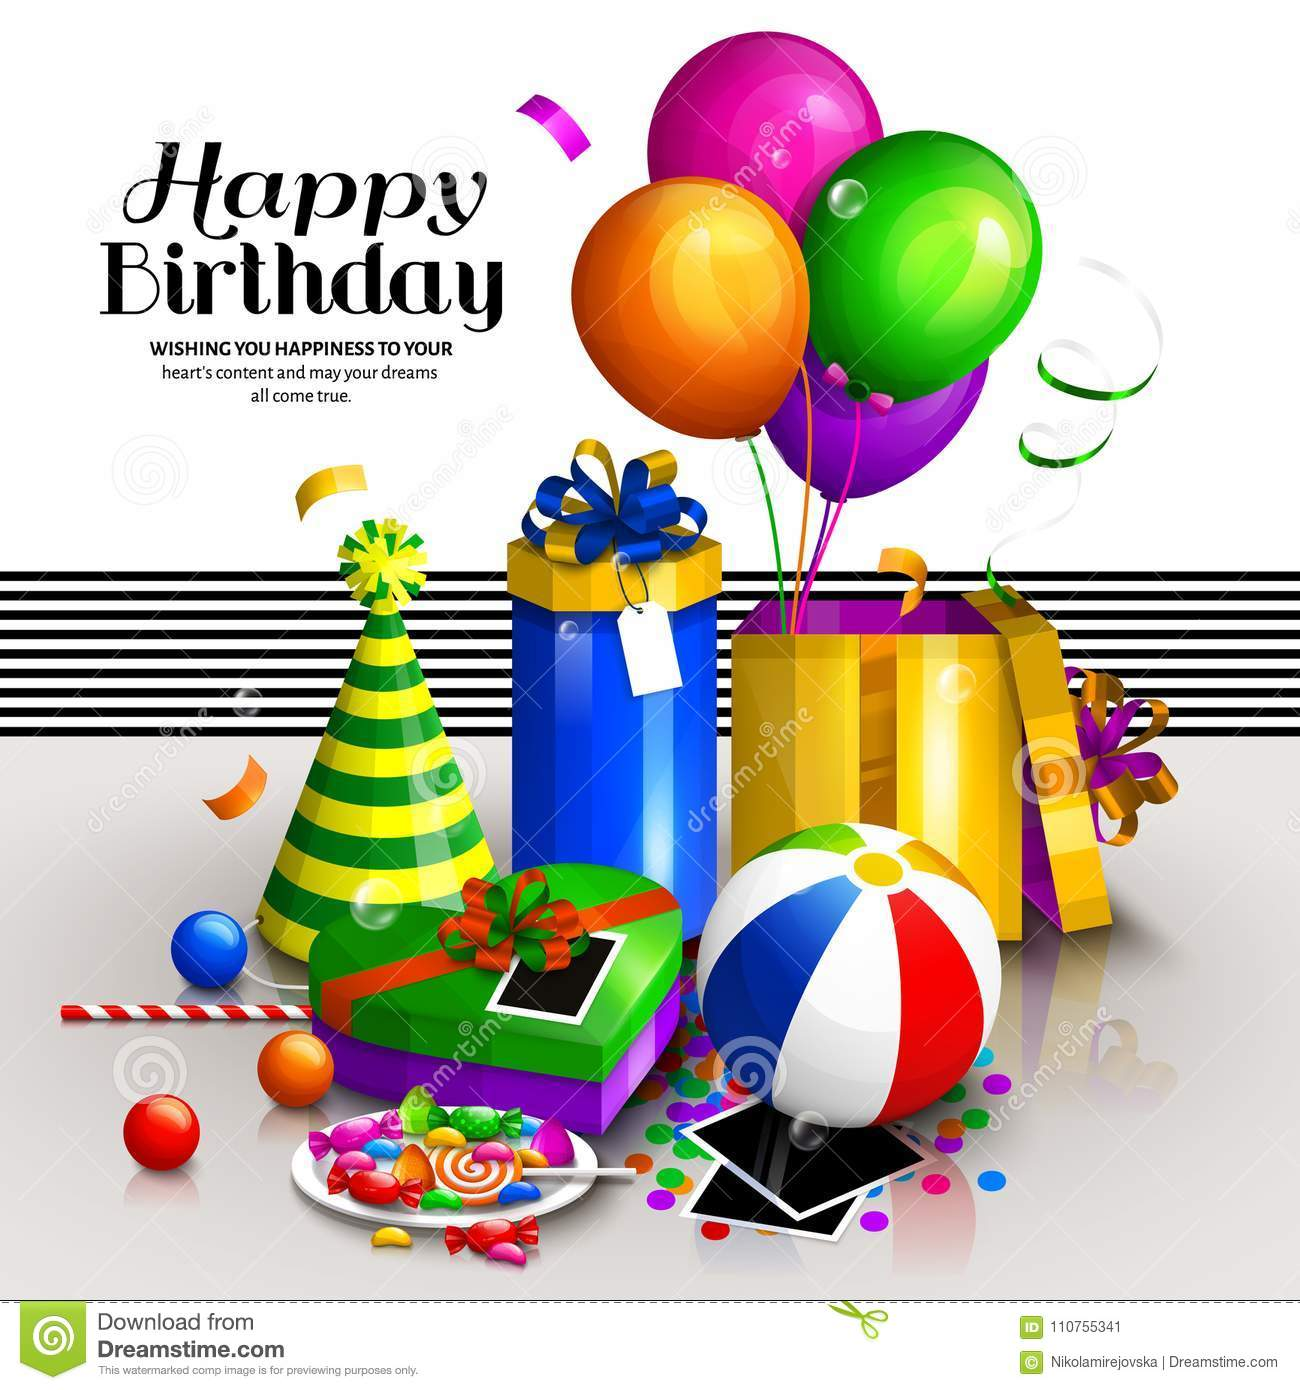 Happy Birthday Greeting Card Colorful Wrapped Gift Boxes Lots Of